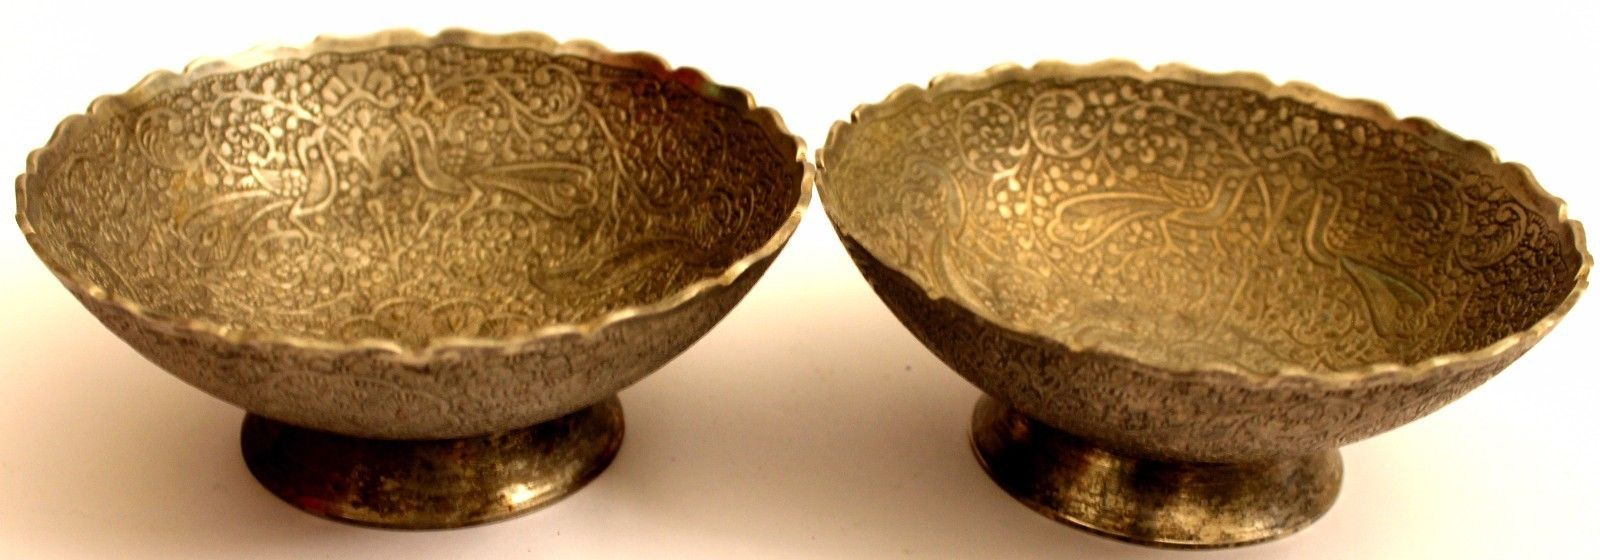 SET OF 2 BEAUTIFUL HAND CURVED BOWL BRASS STEEL CARVING COLLECTIBLE BOWLS DECOR.